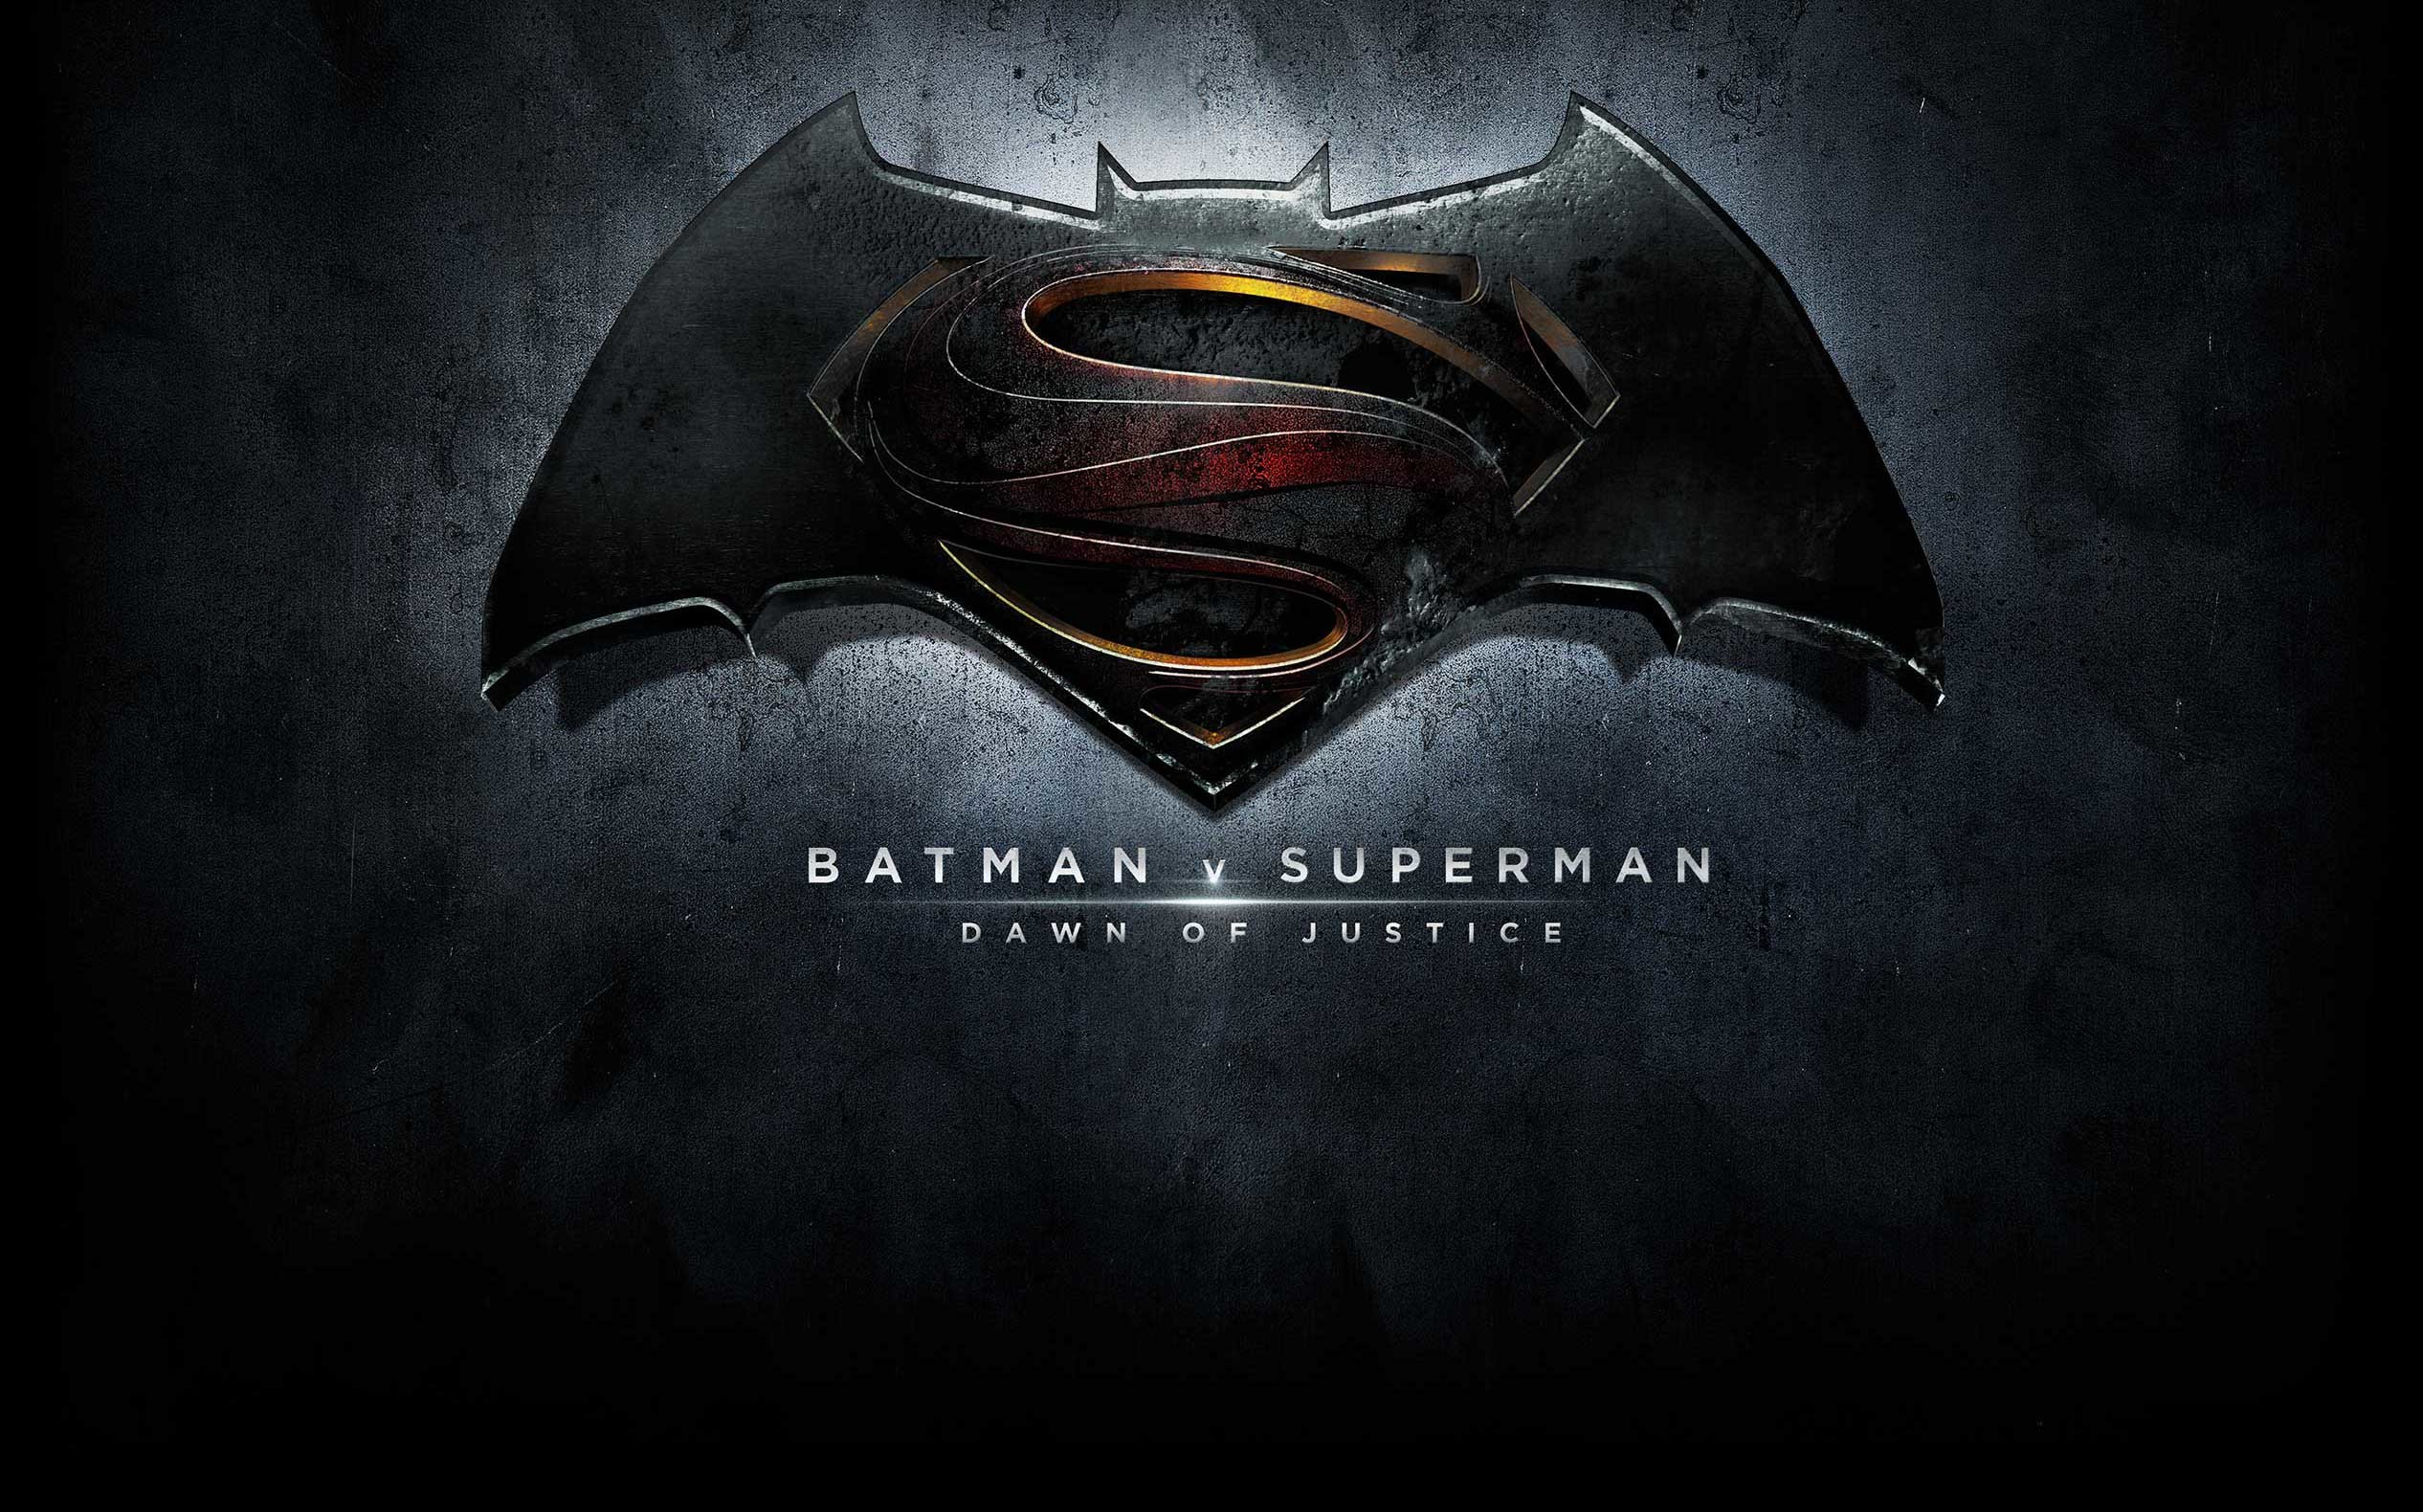 Official credits for Batman v Superman: Dawn of Justice revealed